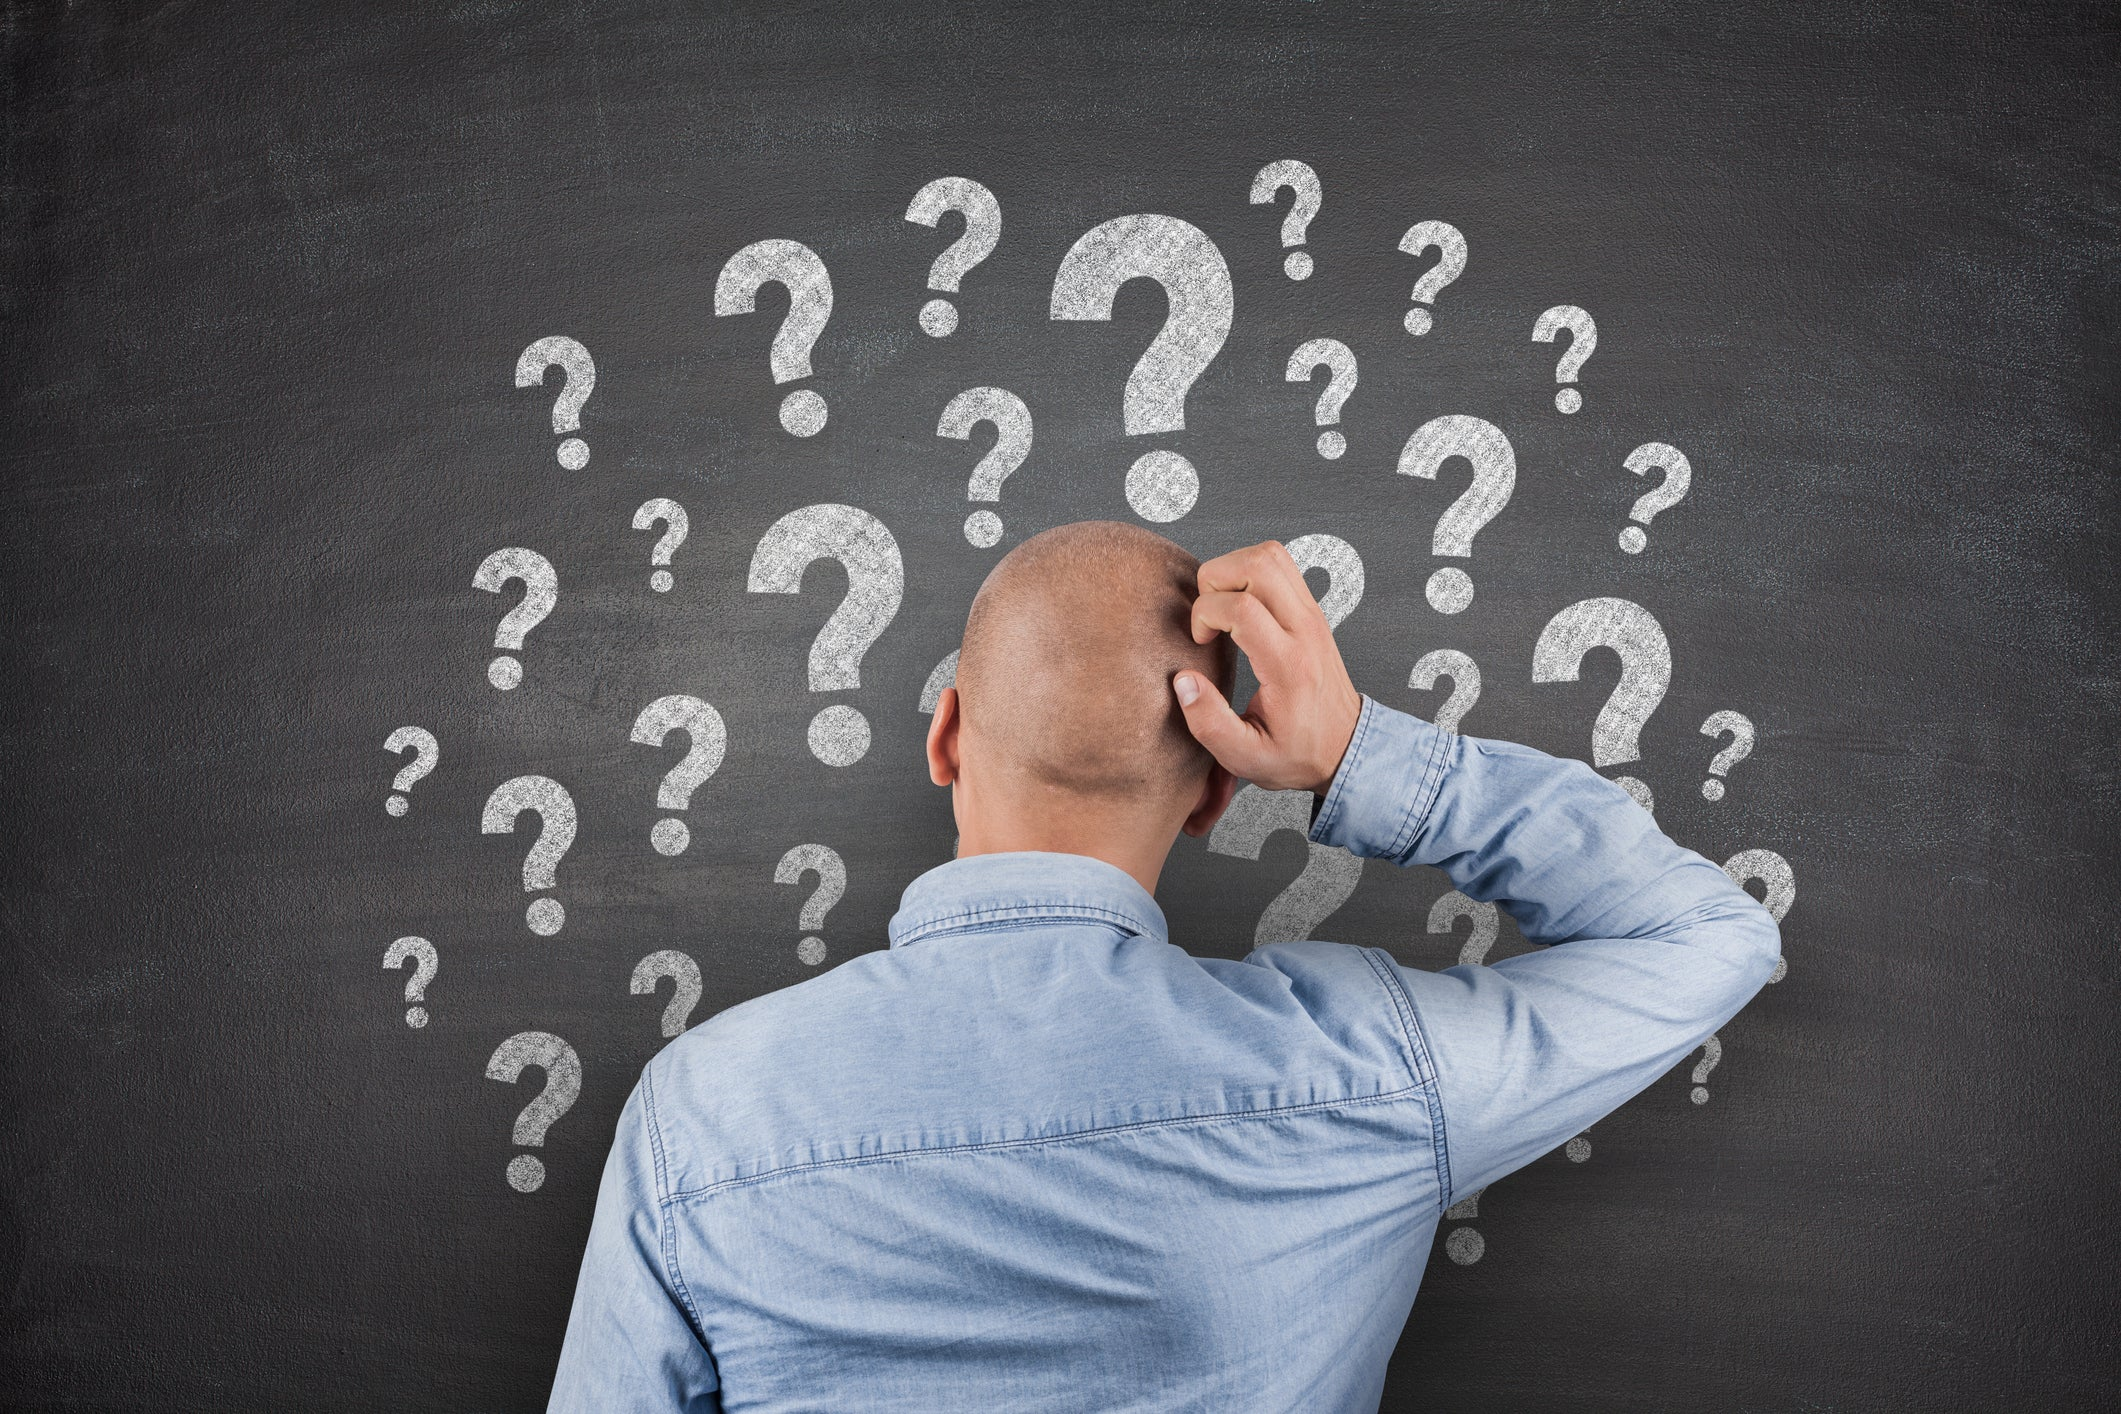 Bald guy scratching his head while looking at a chalkboard with lots of big question marks.